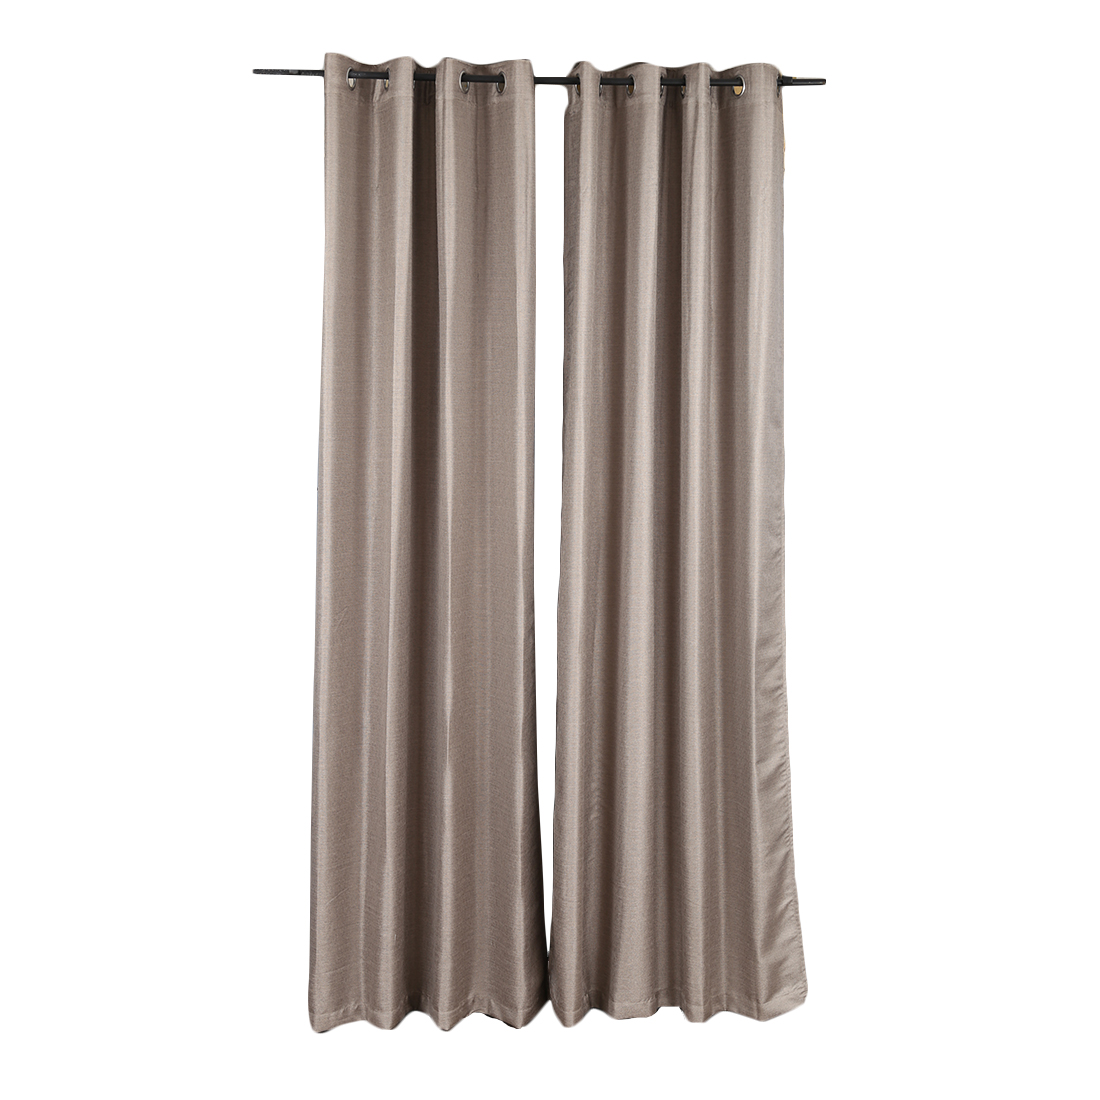 Textura Extra Large Curtain Grey Set of 2 Polyester Door Curtains in Grey Colour by Living Essence